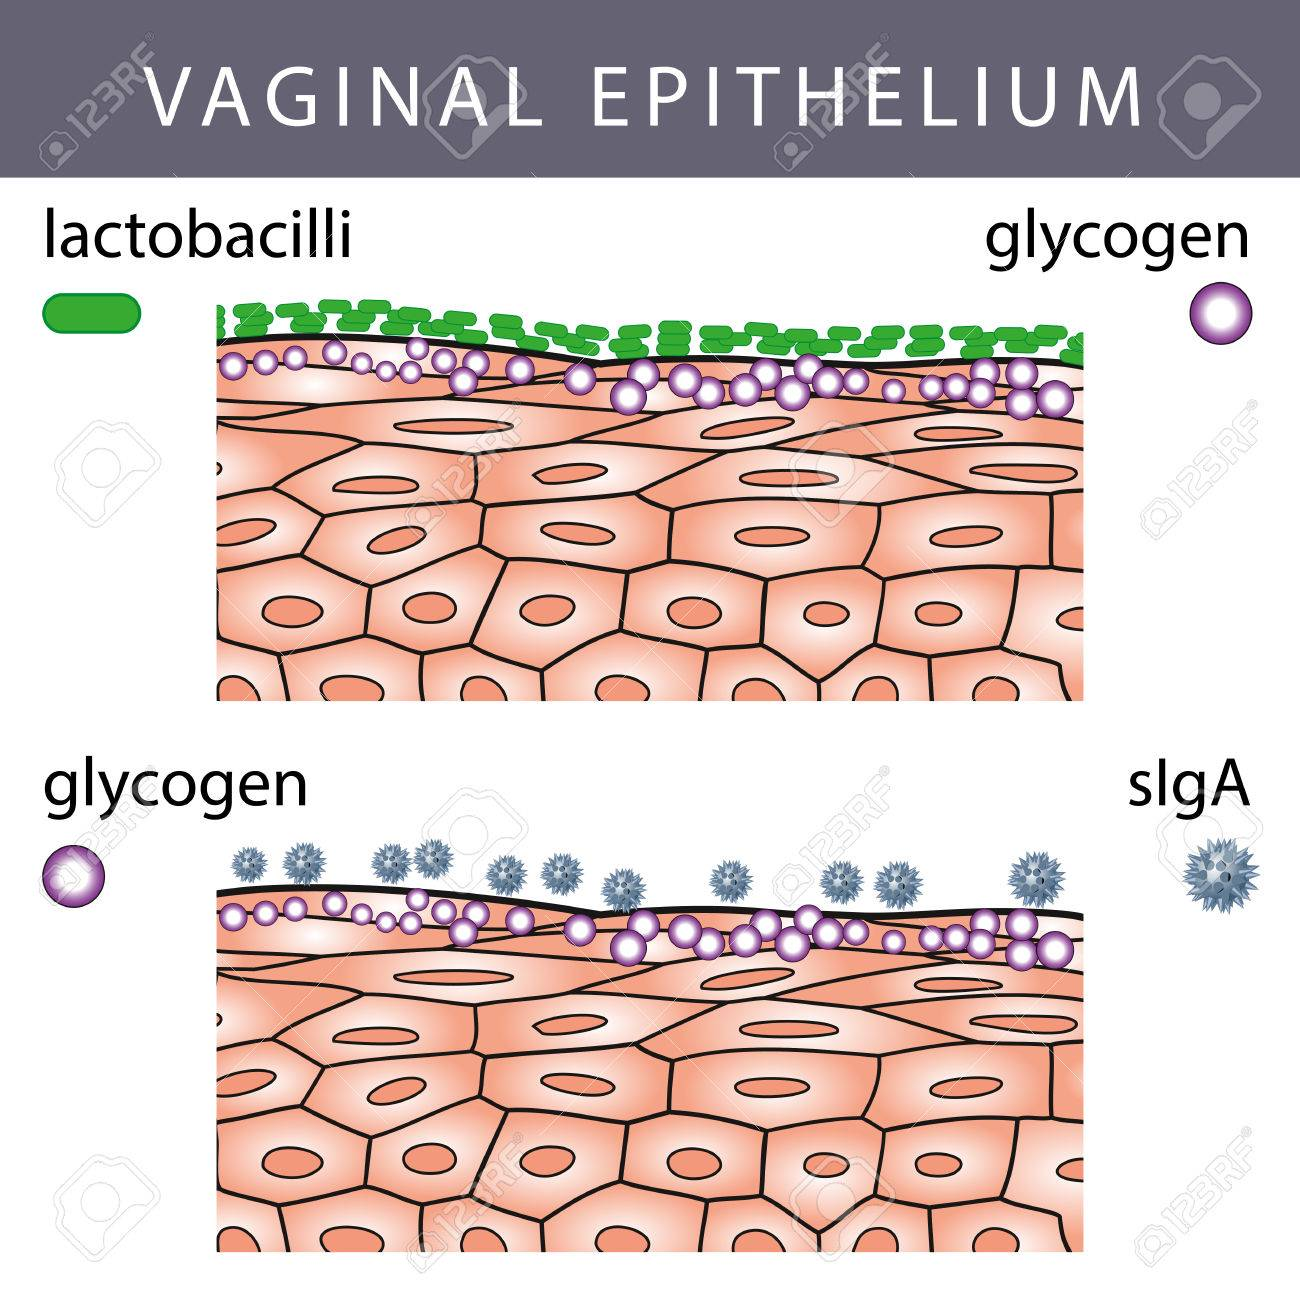 Medical illustration of Vaginal Epithelium Structure with Lactobacilli on the Surface and Glycogen molecules - 44765193